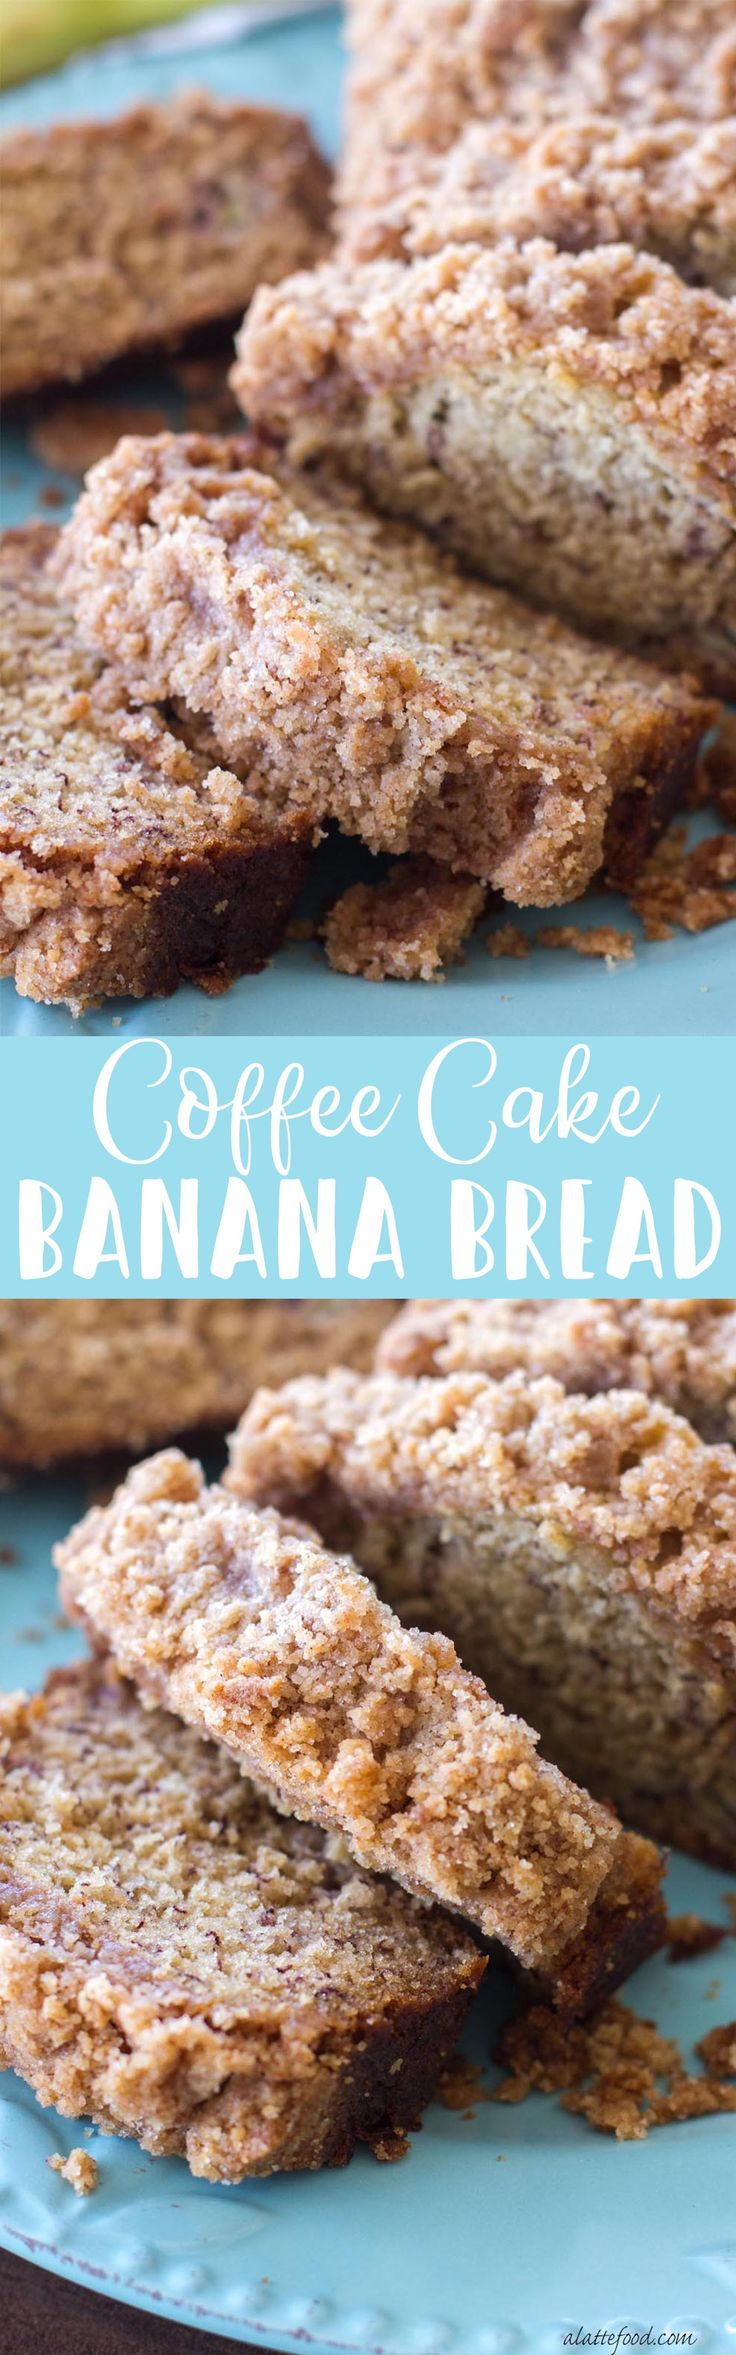 This classic banana bread recipe is topped with a sweet crumb topping making it a cross between a quick bread and coffee cake! Coffee Cake Banana Bread is sure to be a new favorite! banana bread, coffee cake, mom's banana bread, classic banana bread